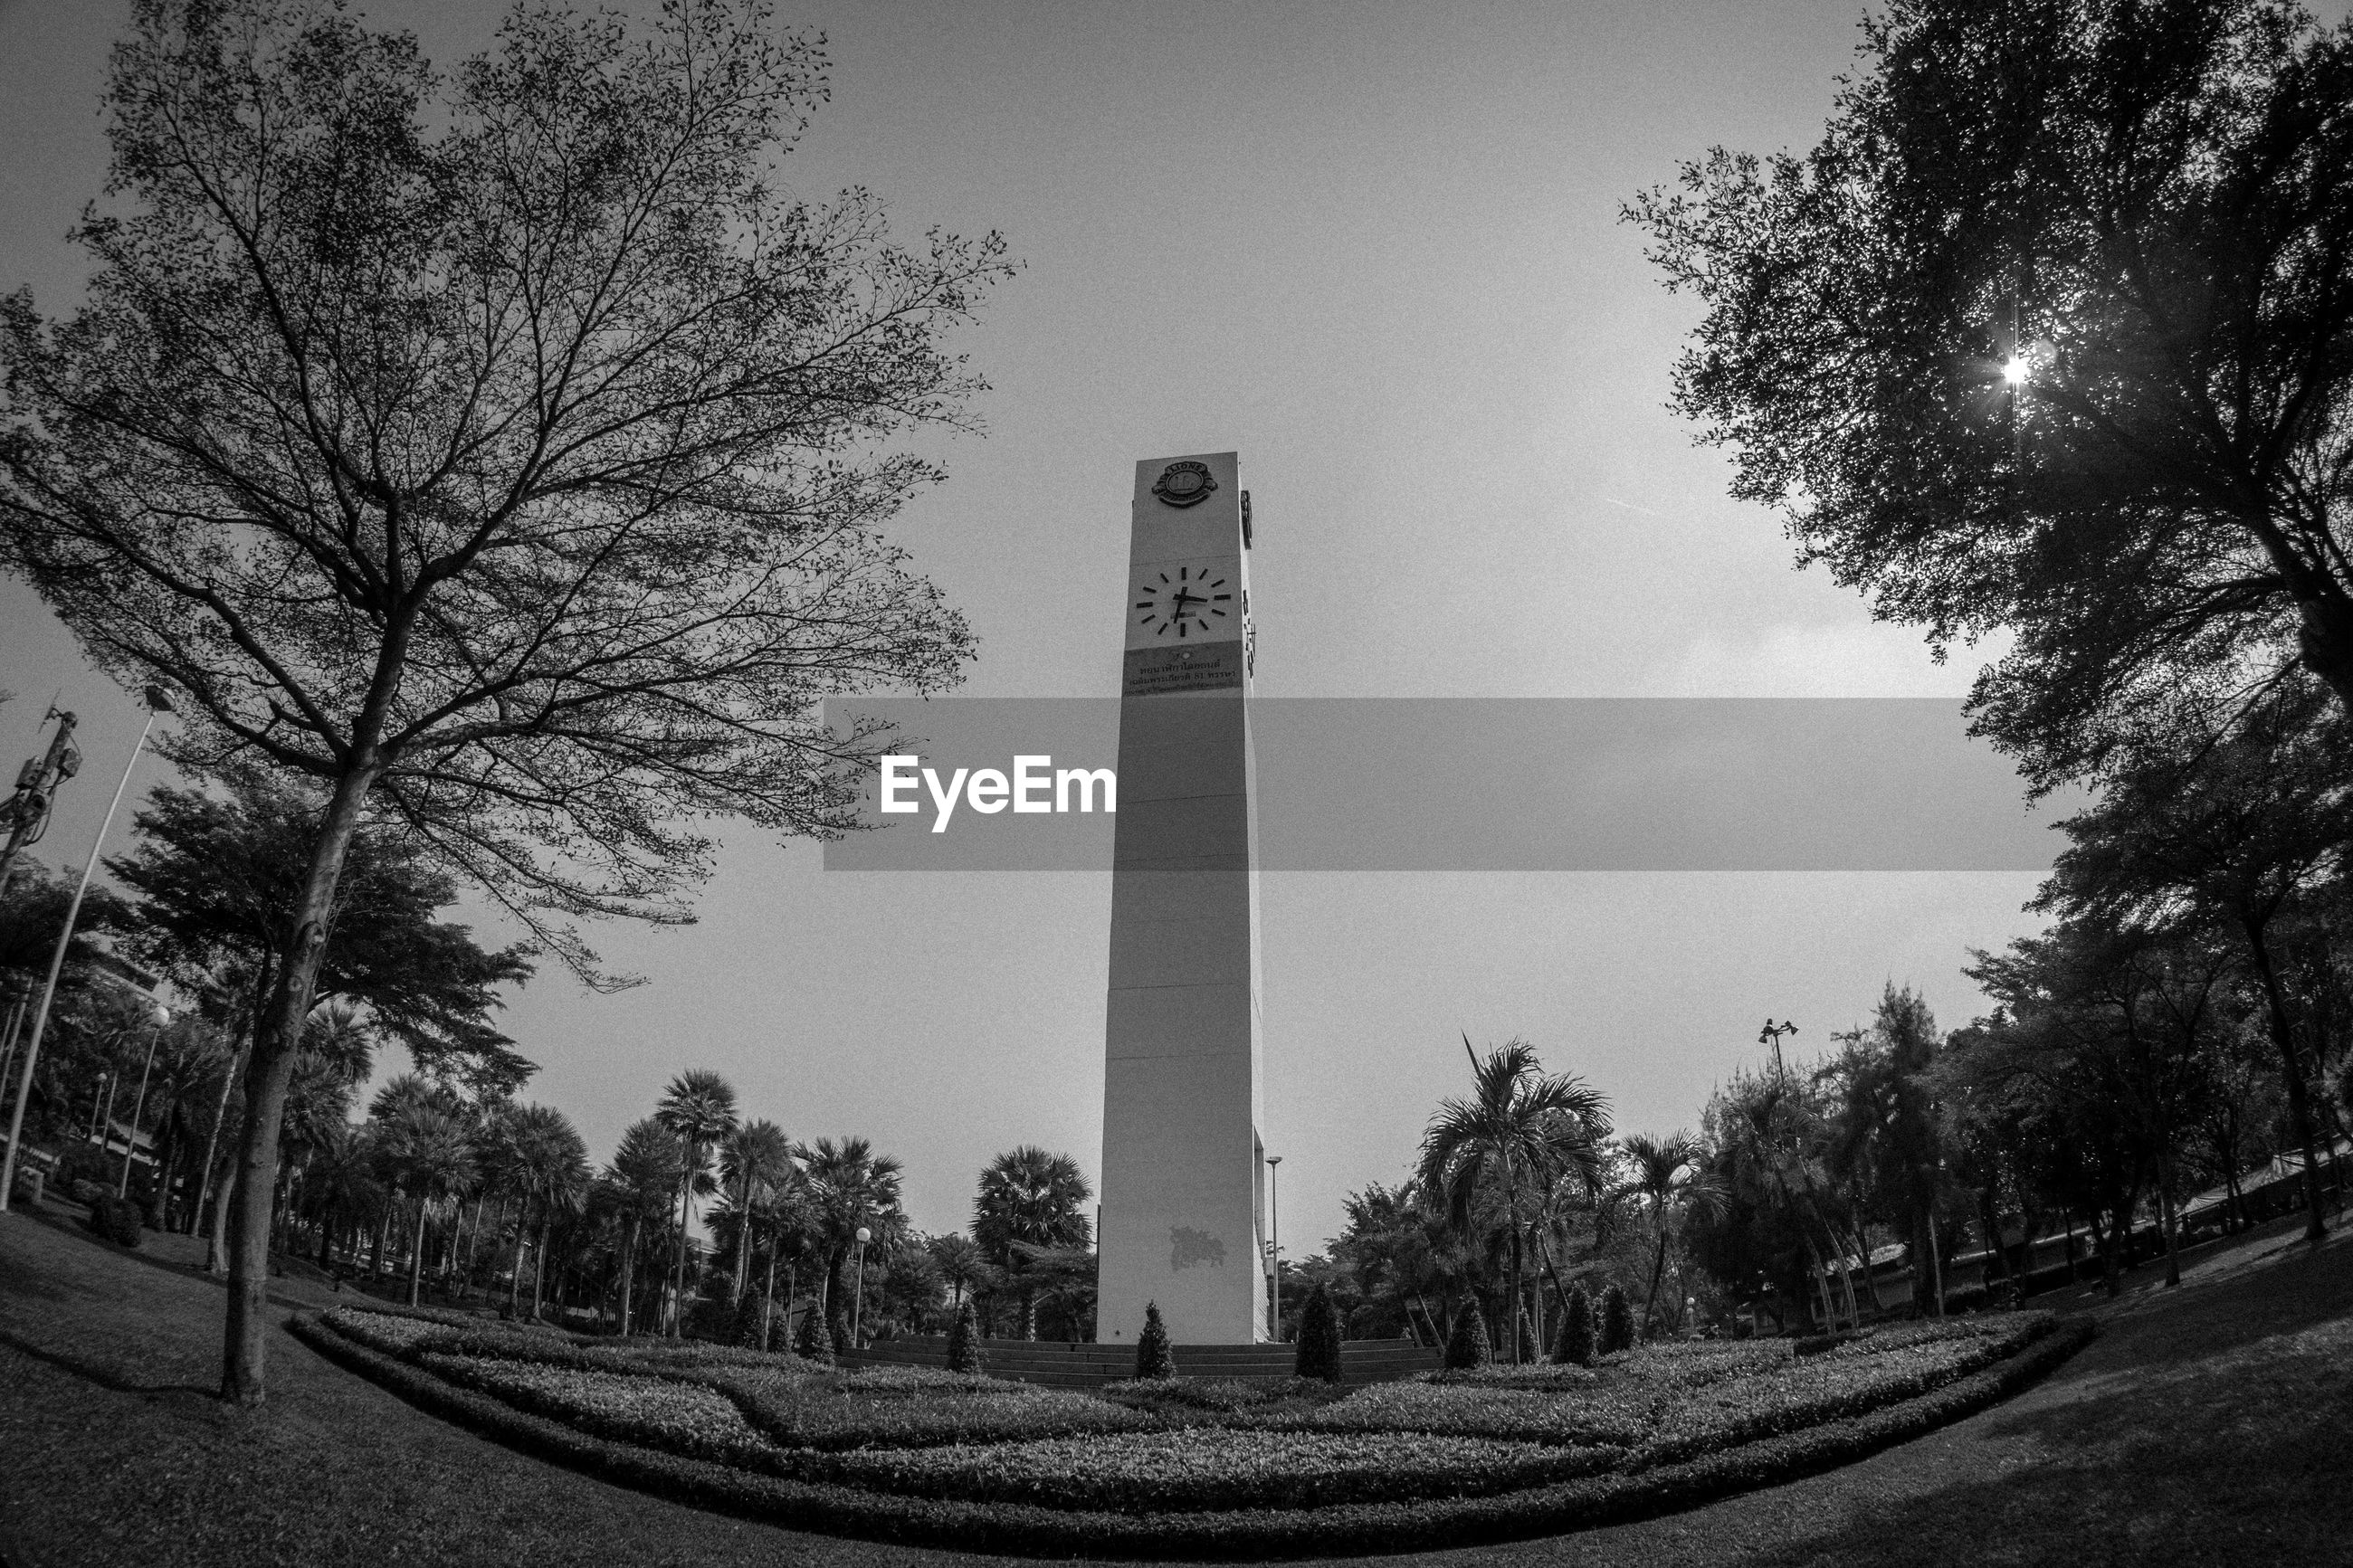 Clock tower in chatuchak park against clear sky